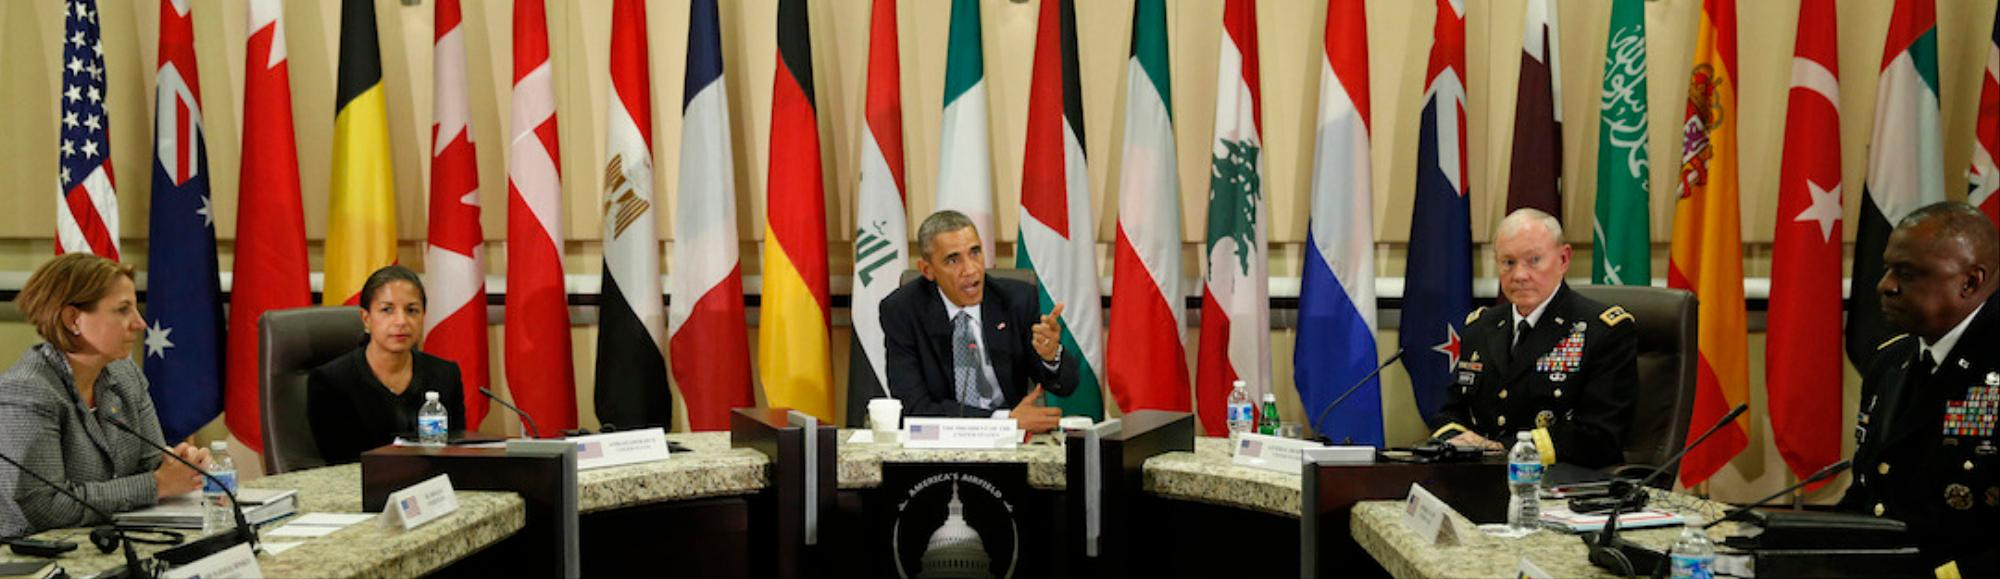 Obama Speaks of Fears for Kobane as He Rallies Support for Anti-Islamic State Coalition